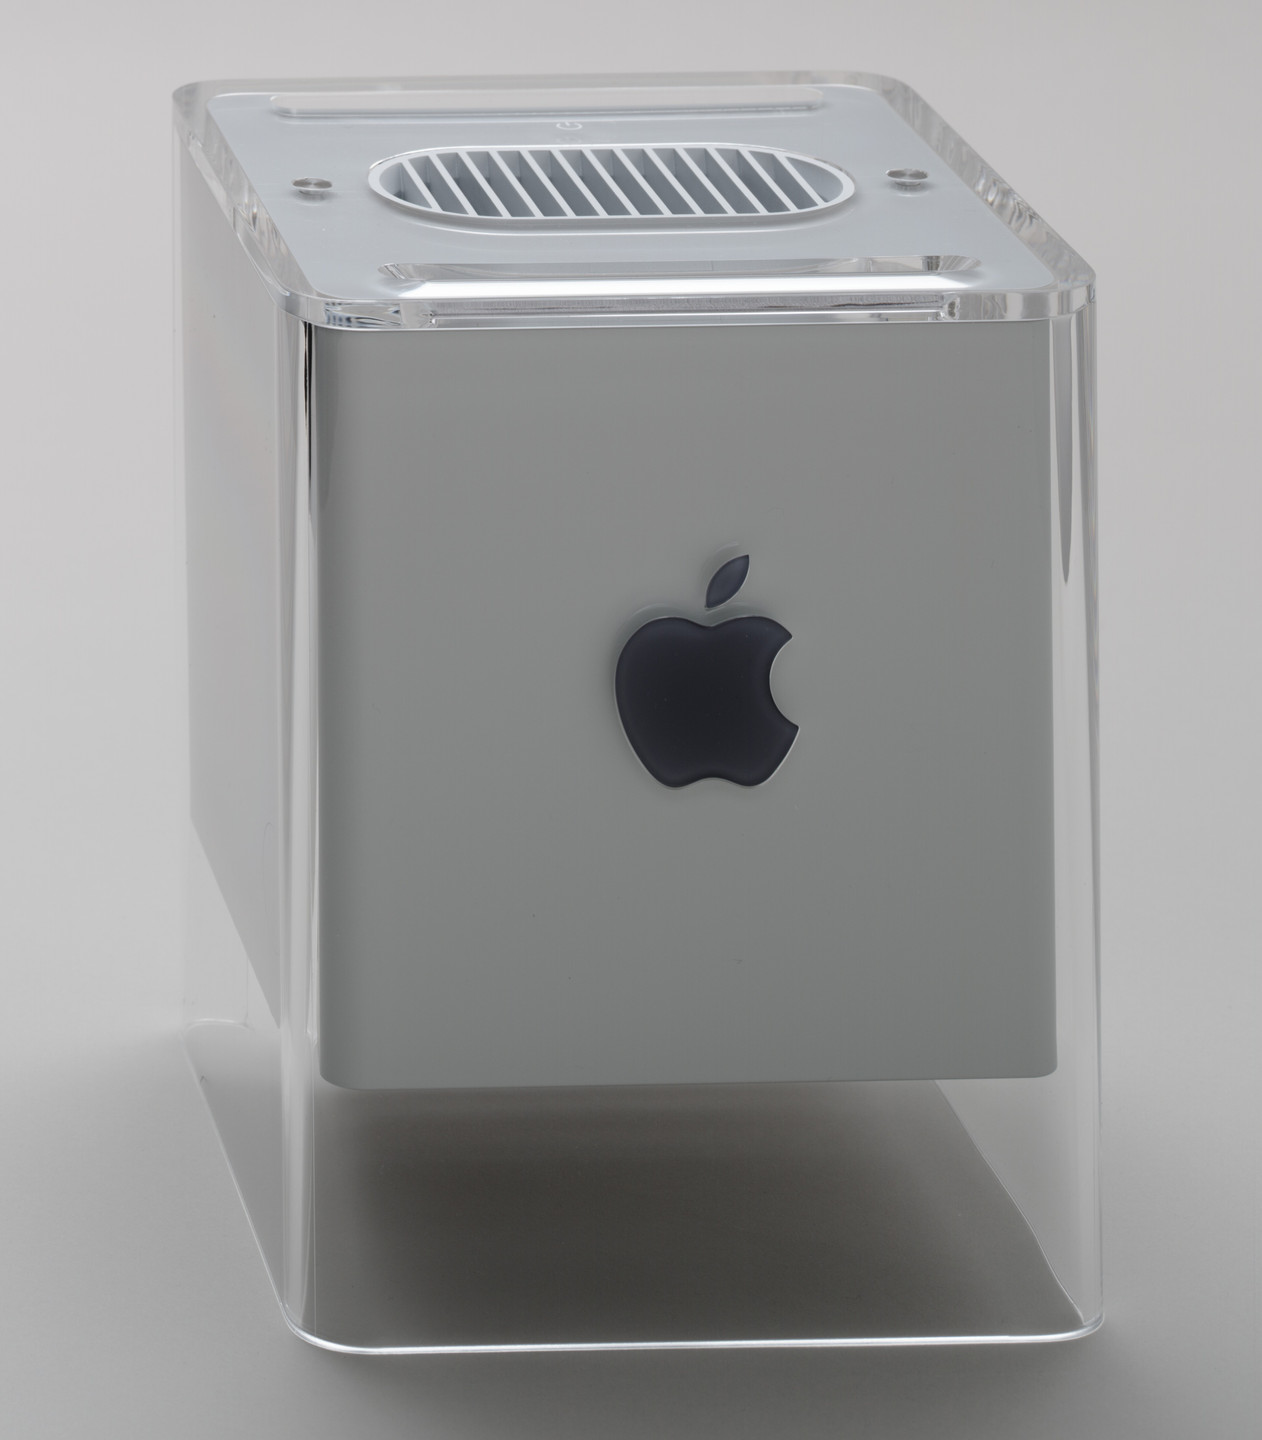 Jonathan Ive, Apple Industrial Design Group. G4 Cube Computer. c. 2000